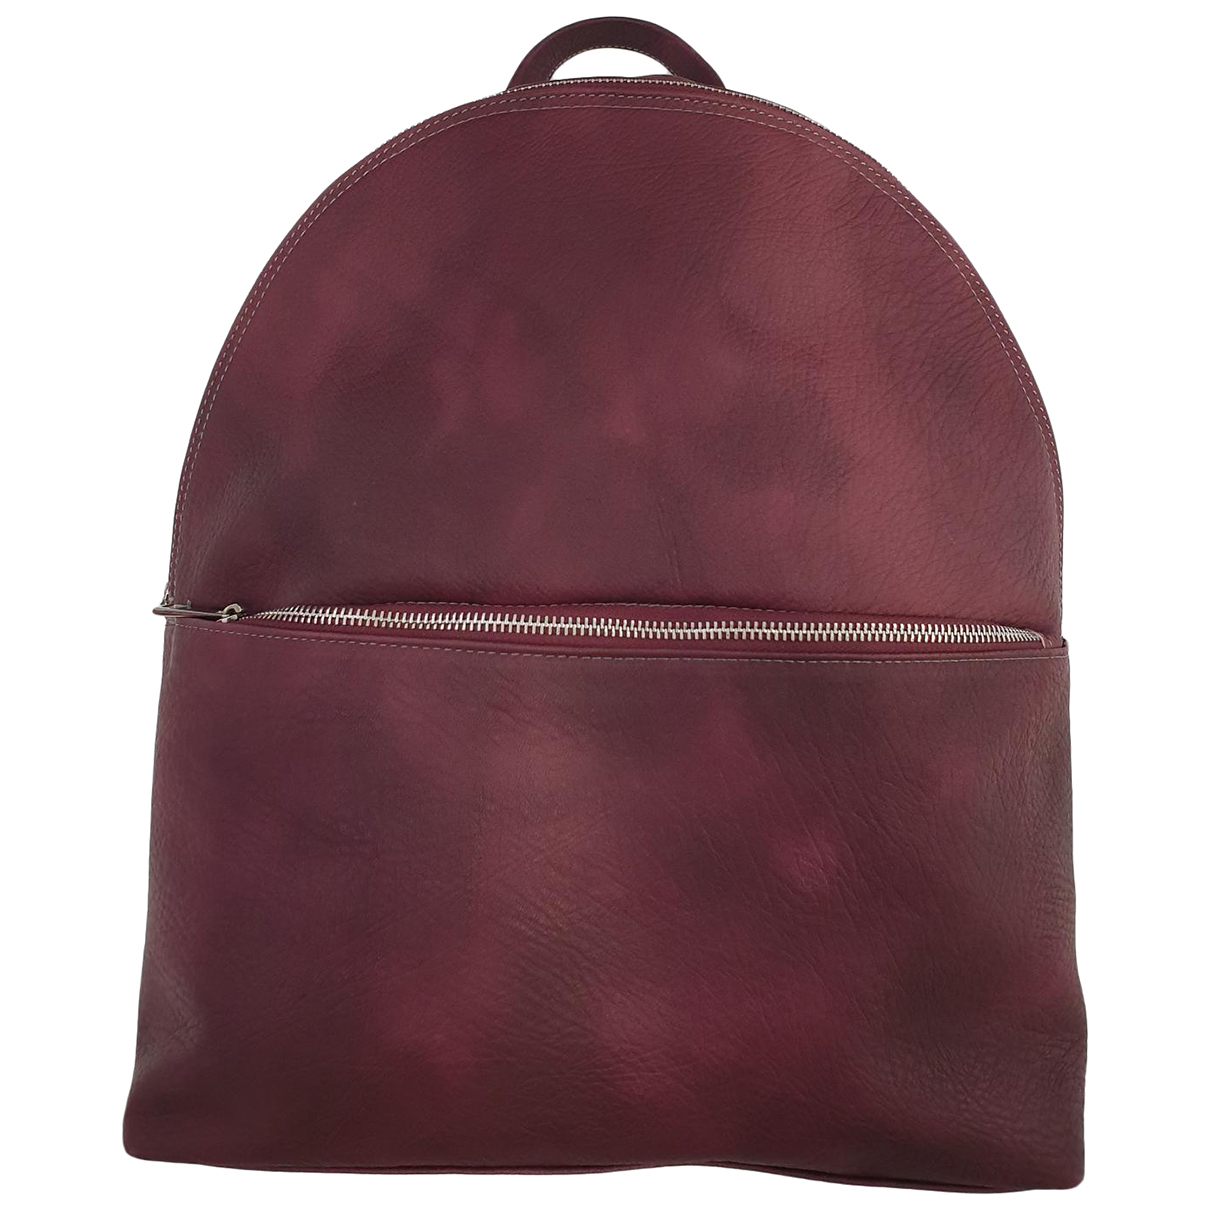 Non Signé / Unsigned N Burgundy Leather backpack for Women N